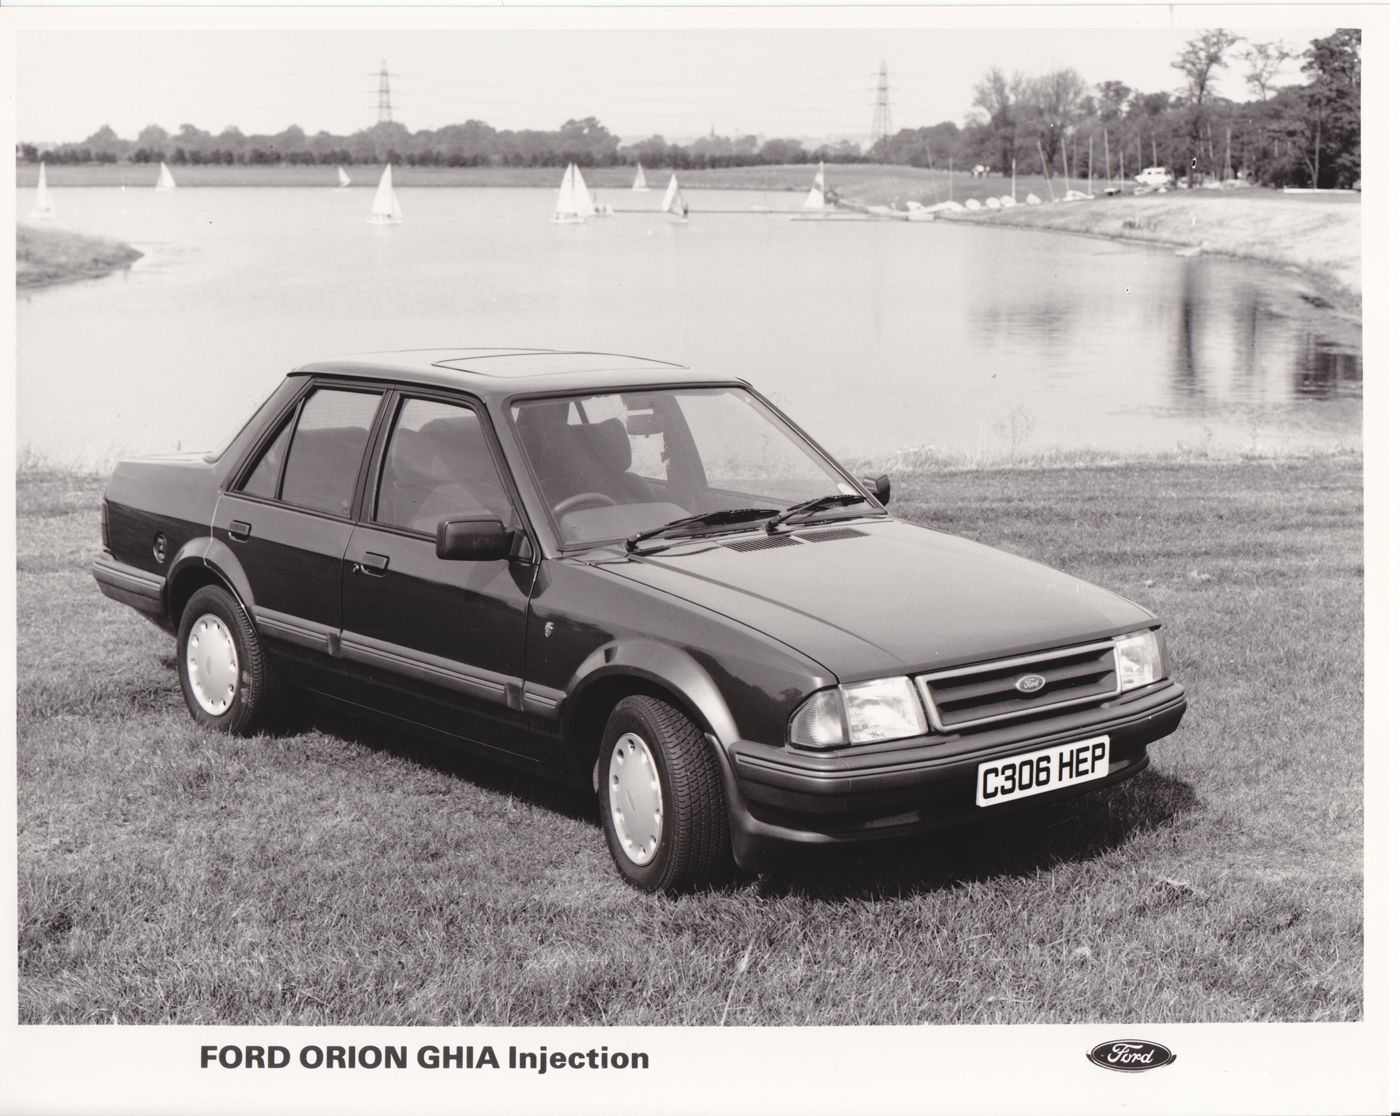 Ford Orion Ghia Injection Uk 1985 Ford Orion Ford Orion